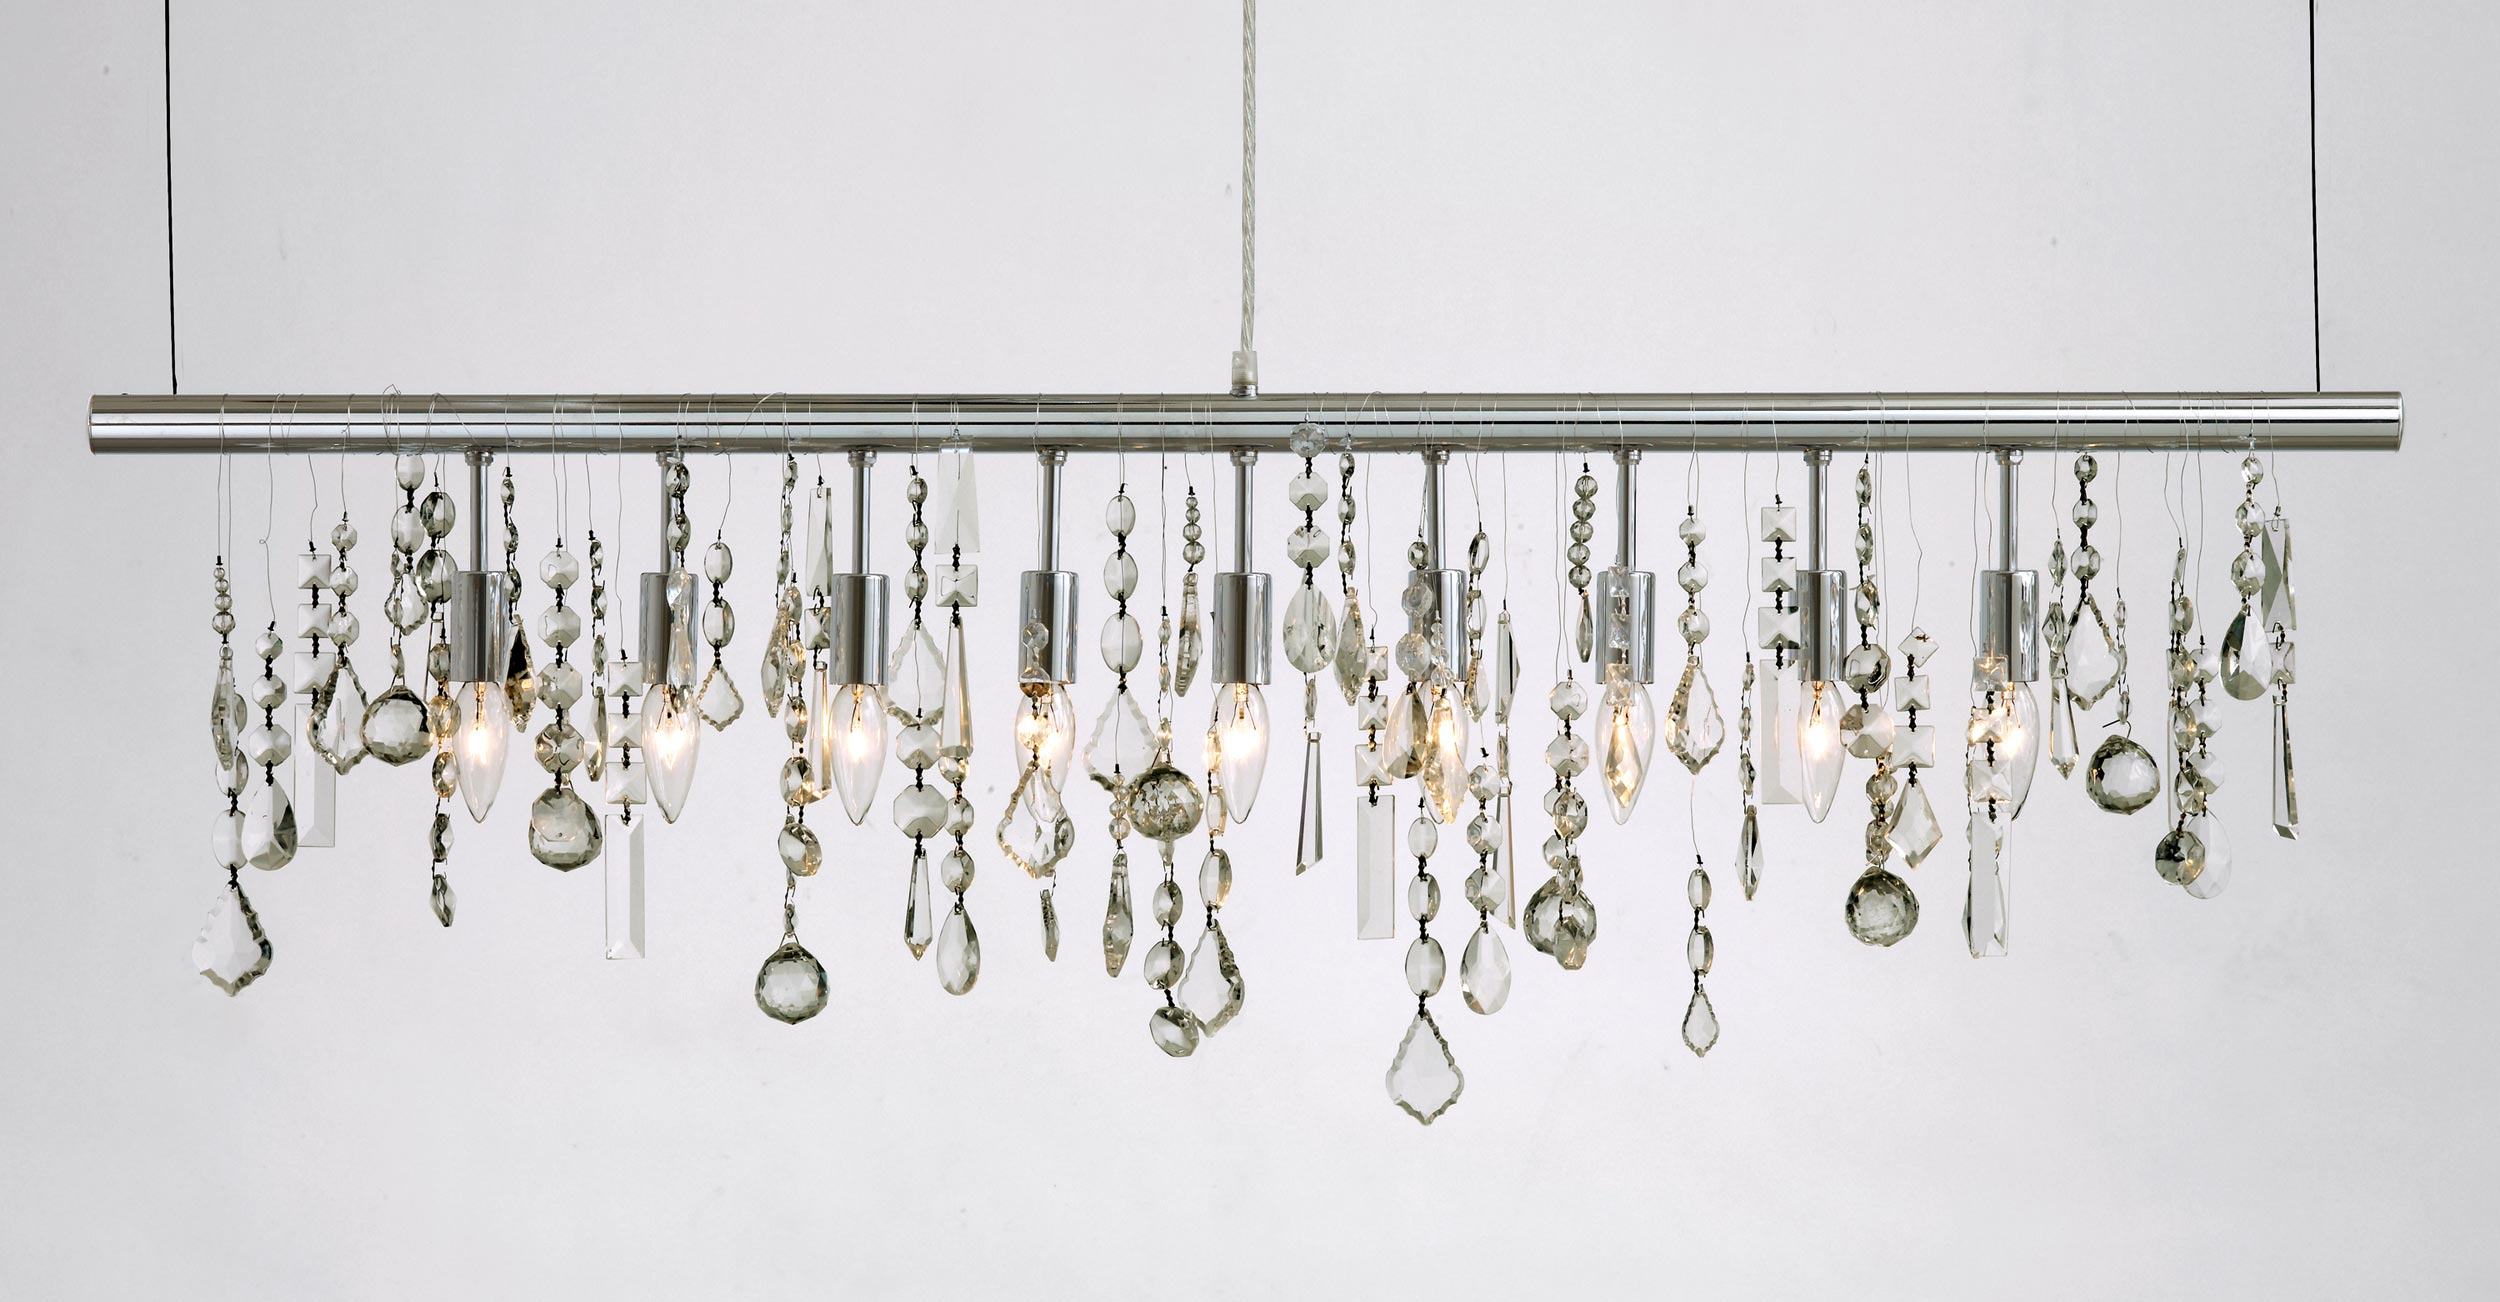 Crystal Linear Suspension By Nuevo Living HGML - Glass chandelier crystals bulk